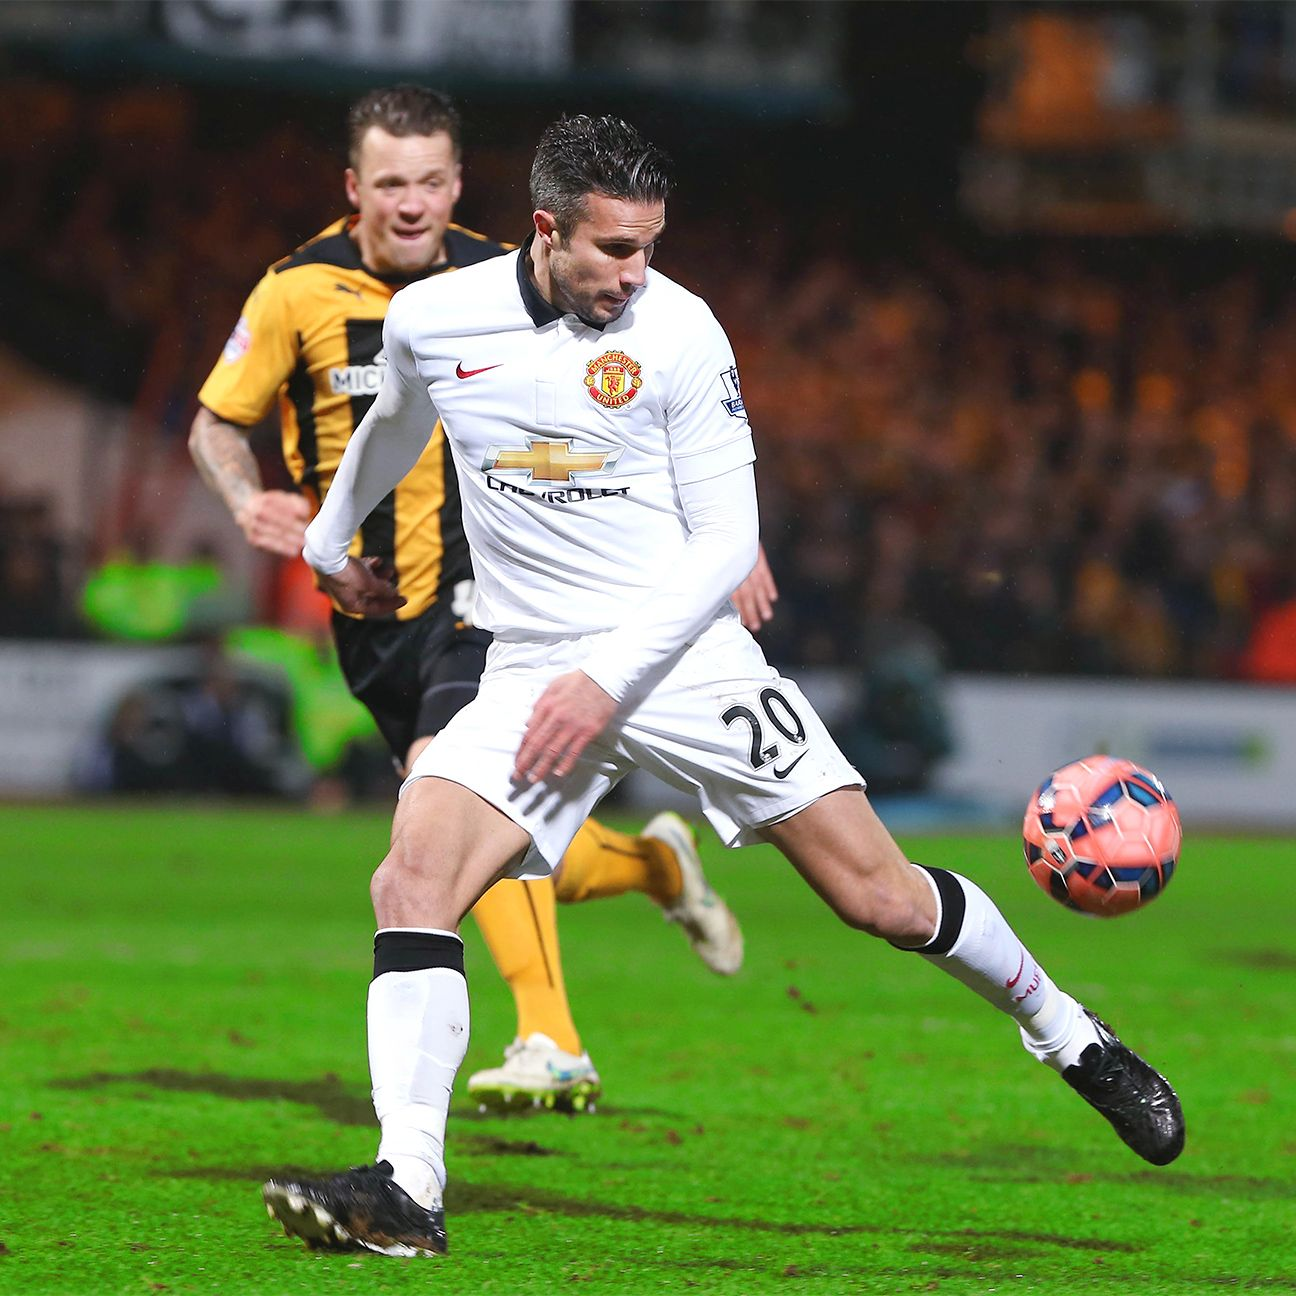 Season 3 has been a struggle for Robin van Persie at Manchester United.